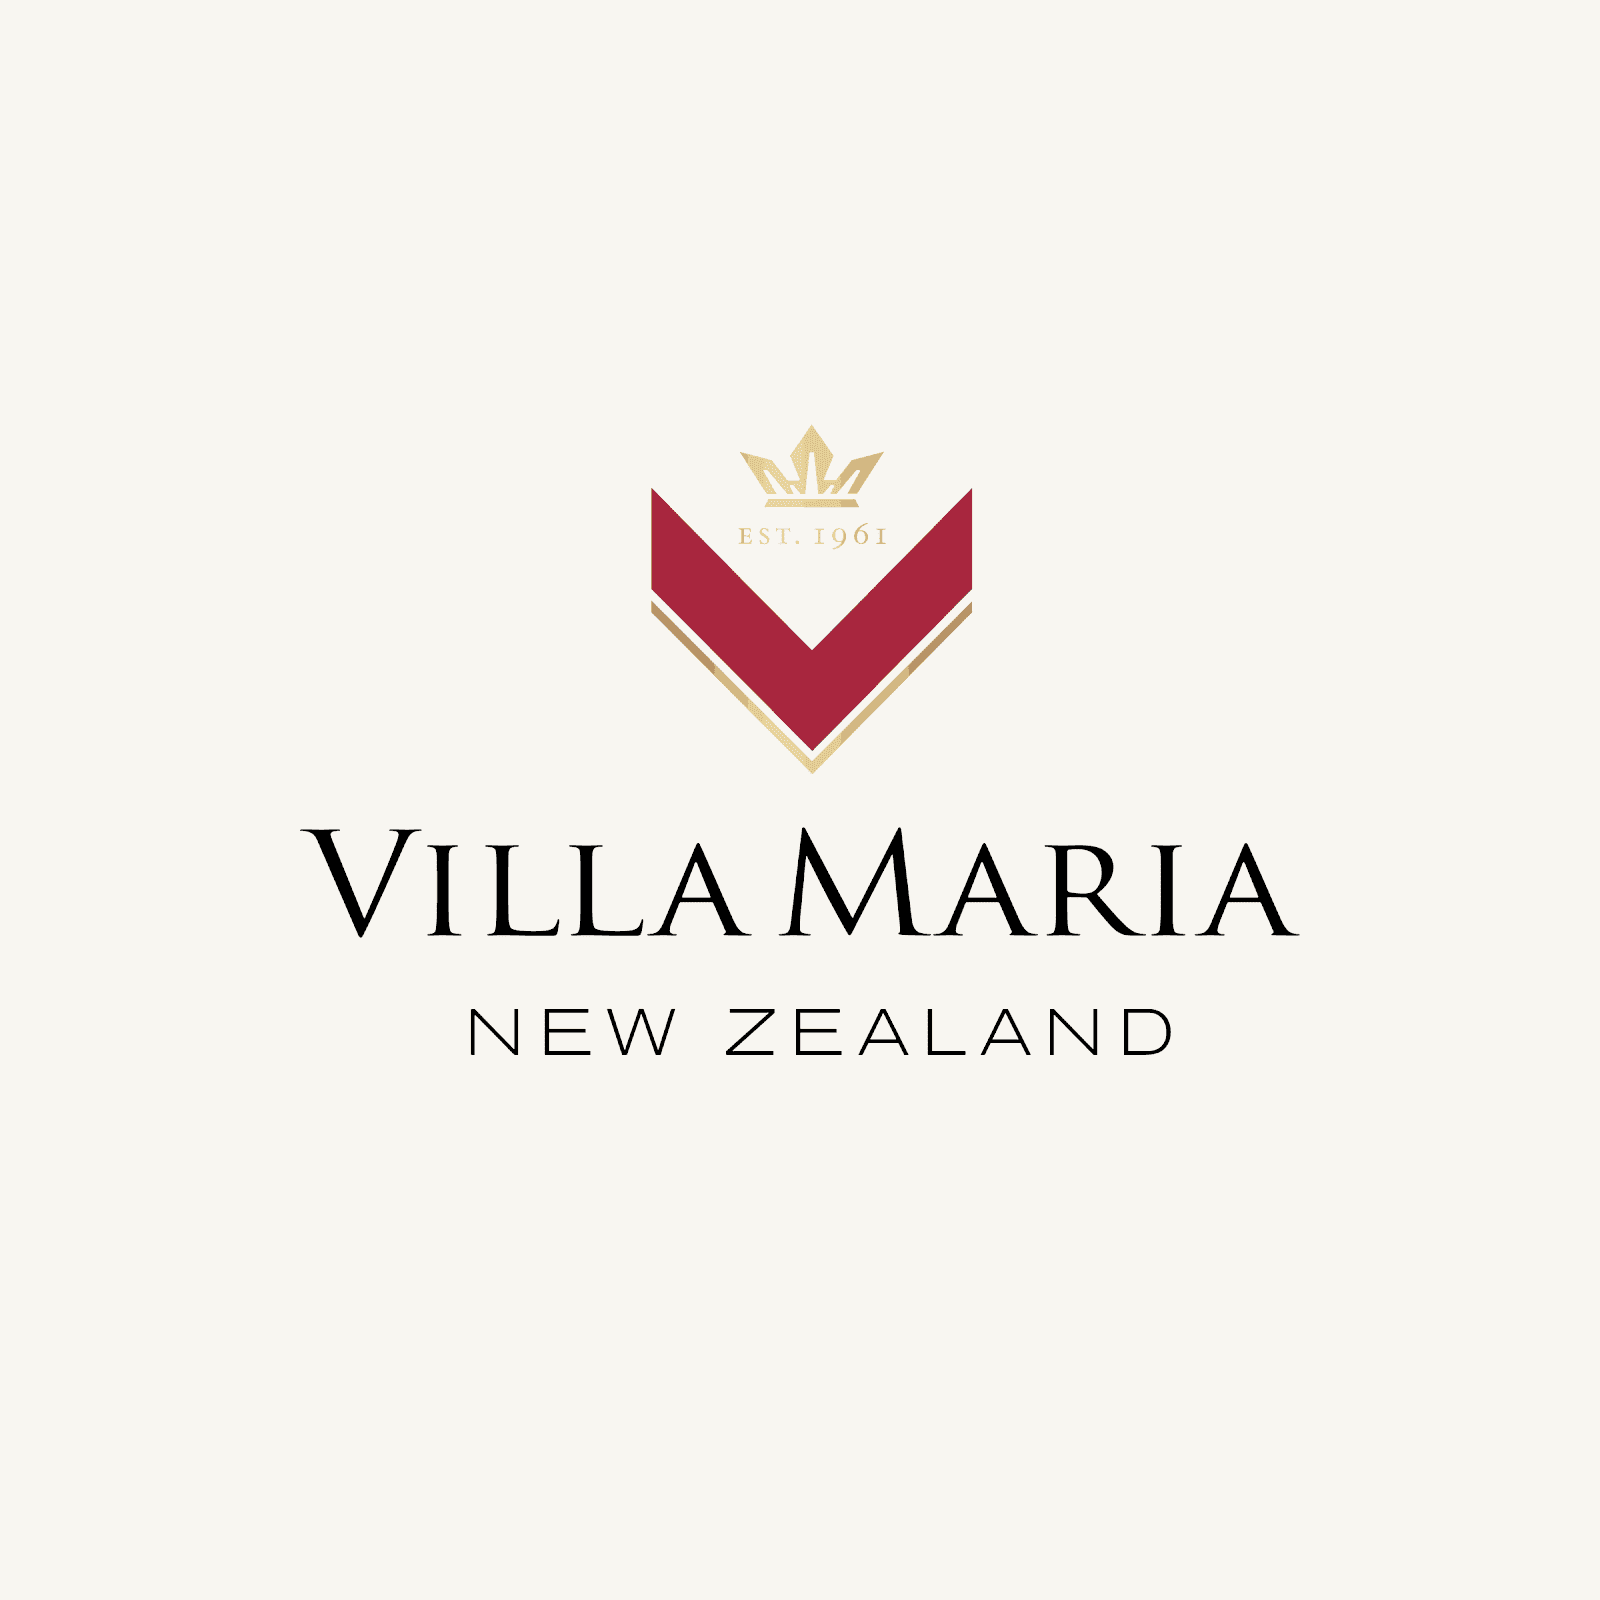 Celia Mearns appointed CFO at Villa Maria